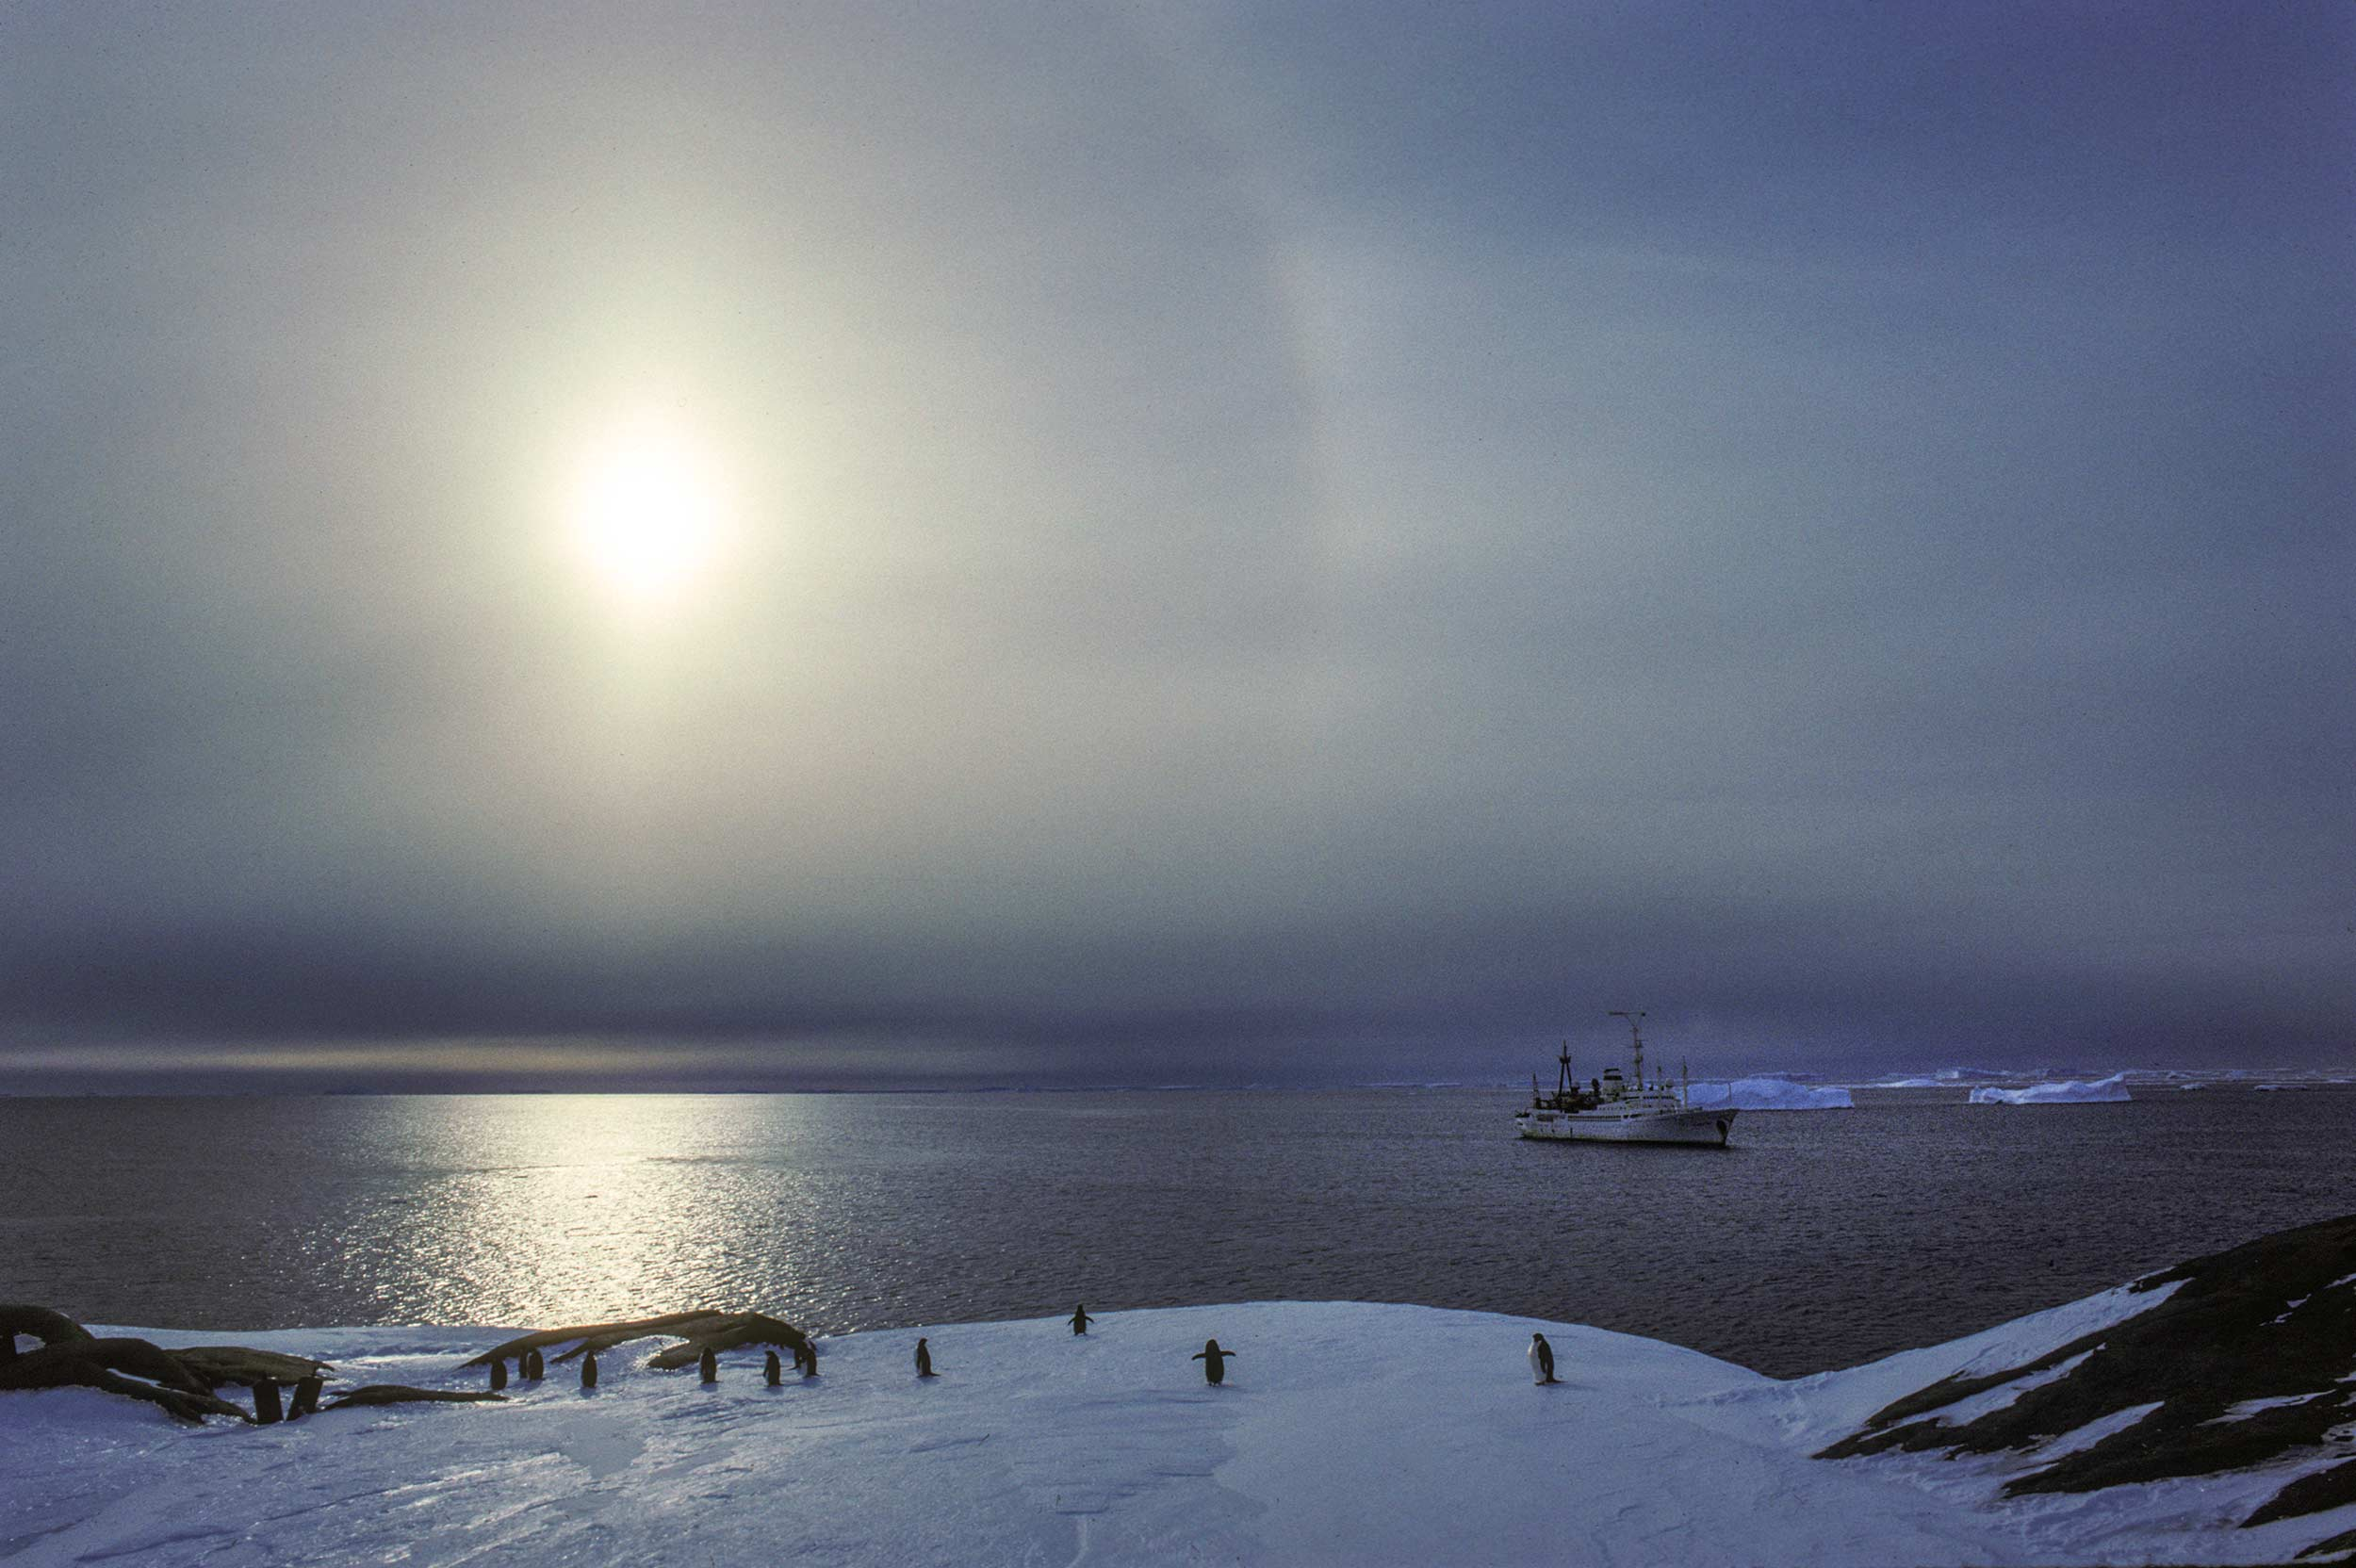 Trans-Antarctica-Expedition-ship-waiting-for-passengers